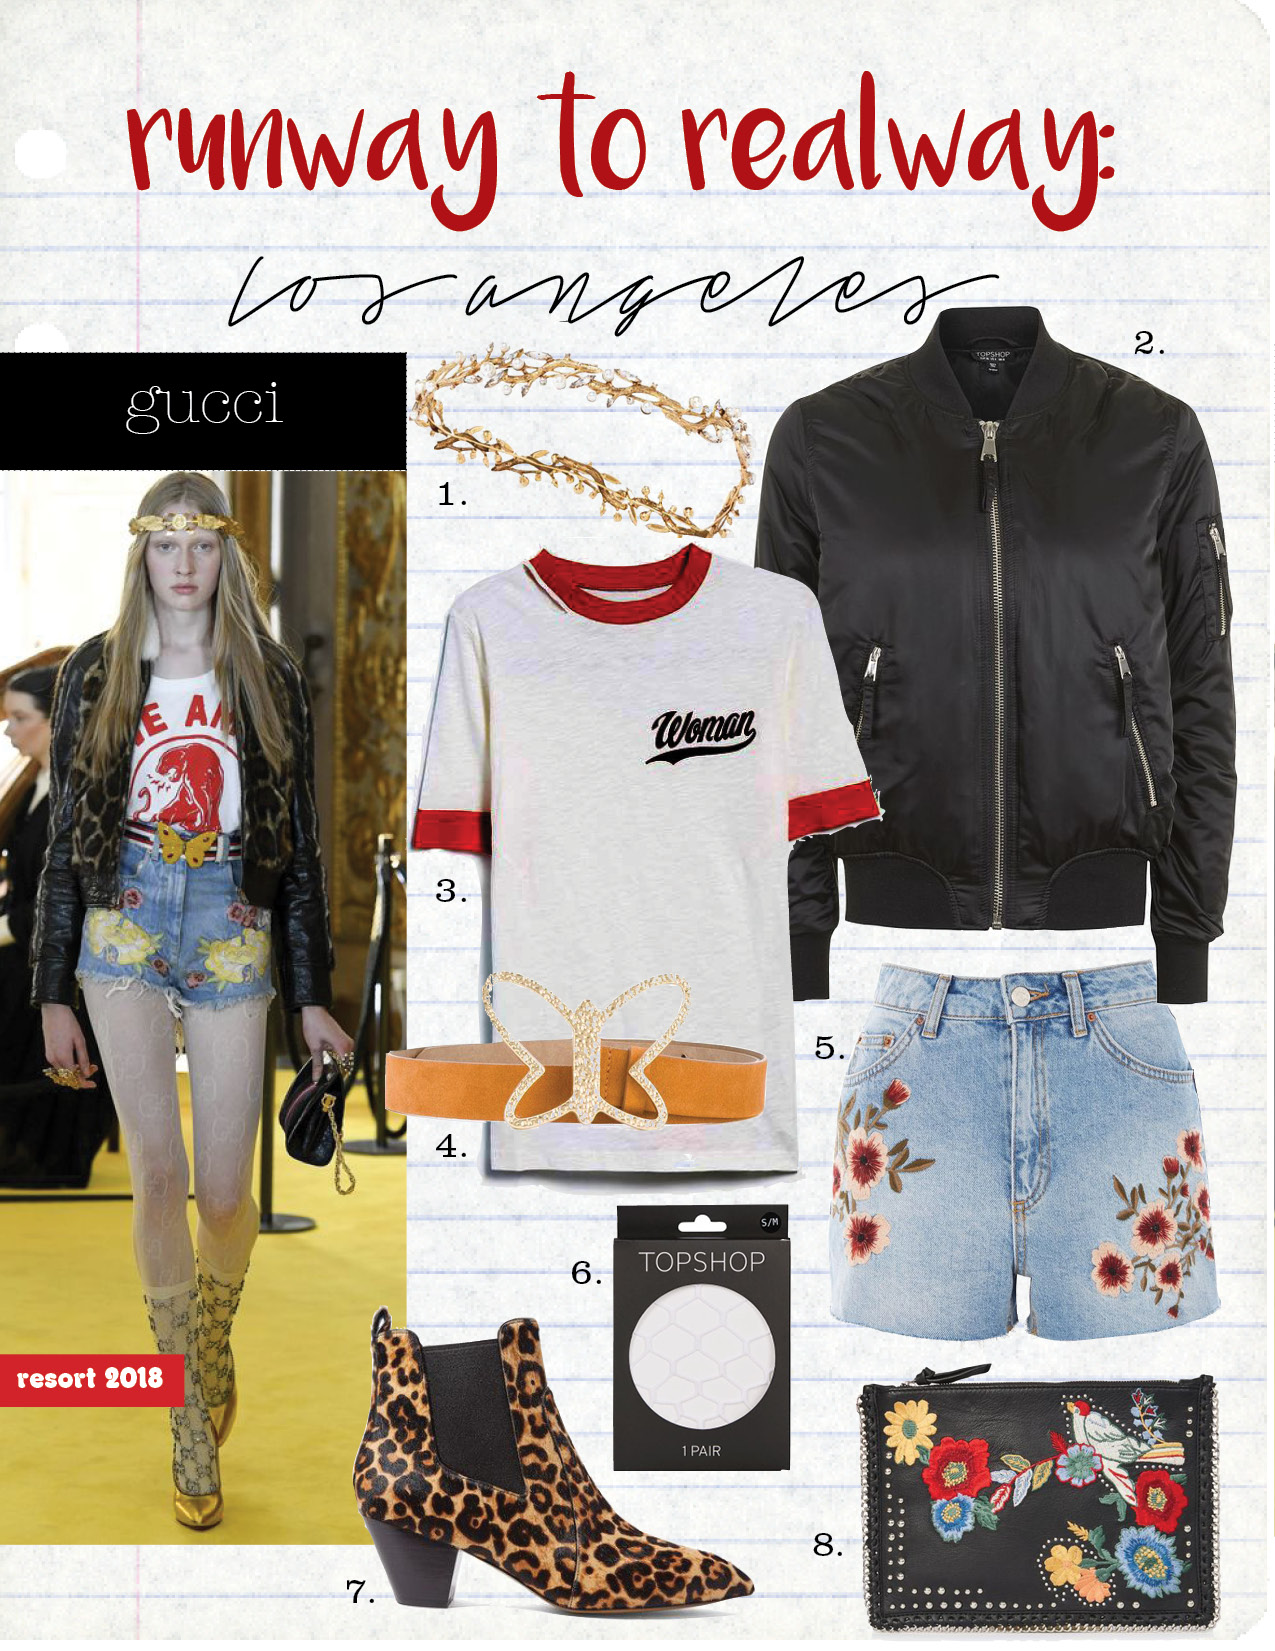 1. lelet ny gold-plated, swarovski crystal and faux pearl headband, $800,  net-a-porter.com  2. topshop ma1 bomber jacket, $75,  topshop.com  3. off-white thanks ripped tee, $226,  needsupply.com  4. see by chloe butterfly buckle belt, $228,  farfetch.com  5. topshop moto blossom embroidered mom jeans, $65,  topshop.com  6. topshop supersize fishnets tights, $12,  topshop.com  7. marc jacobs kim leopard-print calf hair chelsea boots, $225,  net-a-porter.com  8. topshop leather embroidered cross body bag, $70,  topshop.com